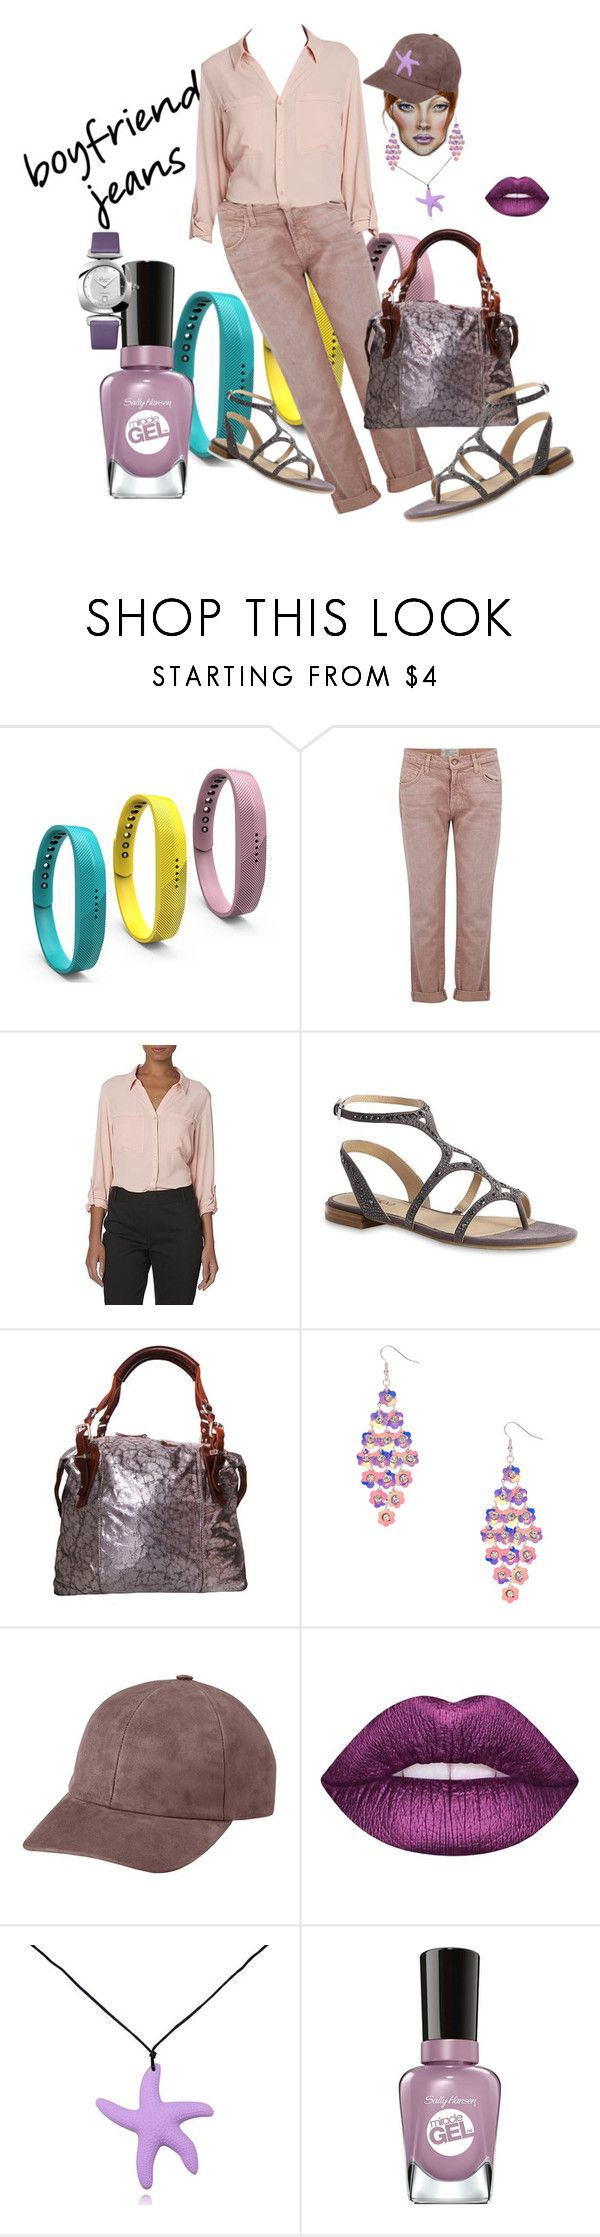 """""""Boyfriend Jeans and Sandals.."""" by marlenajo-b ❤ liked on Polyvore featuring Fitbit, Current/Elliott, Pauric Sweeney, Vianel, Lime Crime, Sally Hansen, Glashütte and boyfriendjeans"""